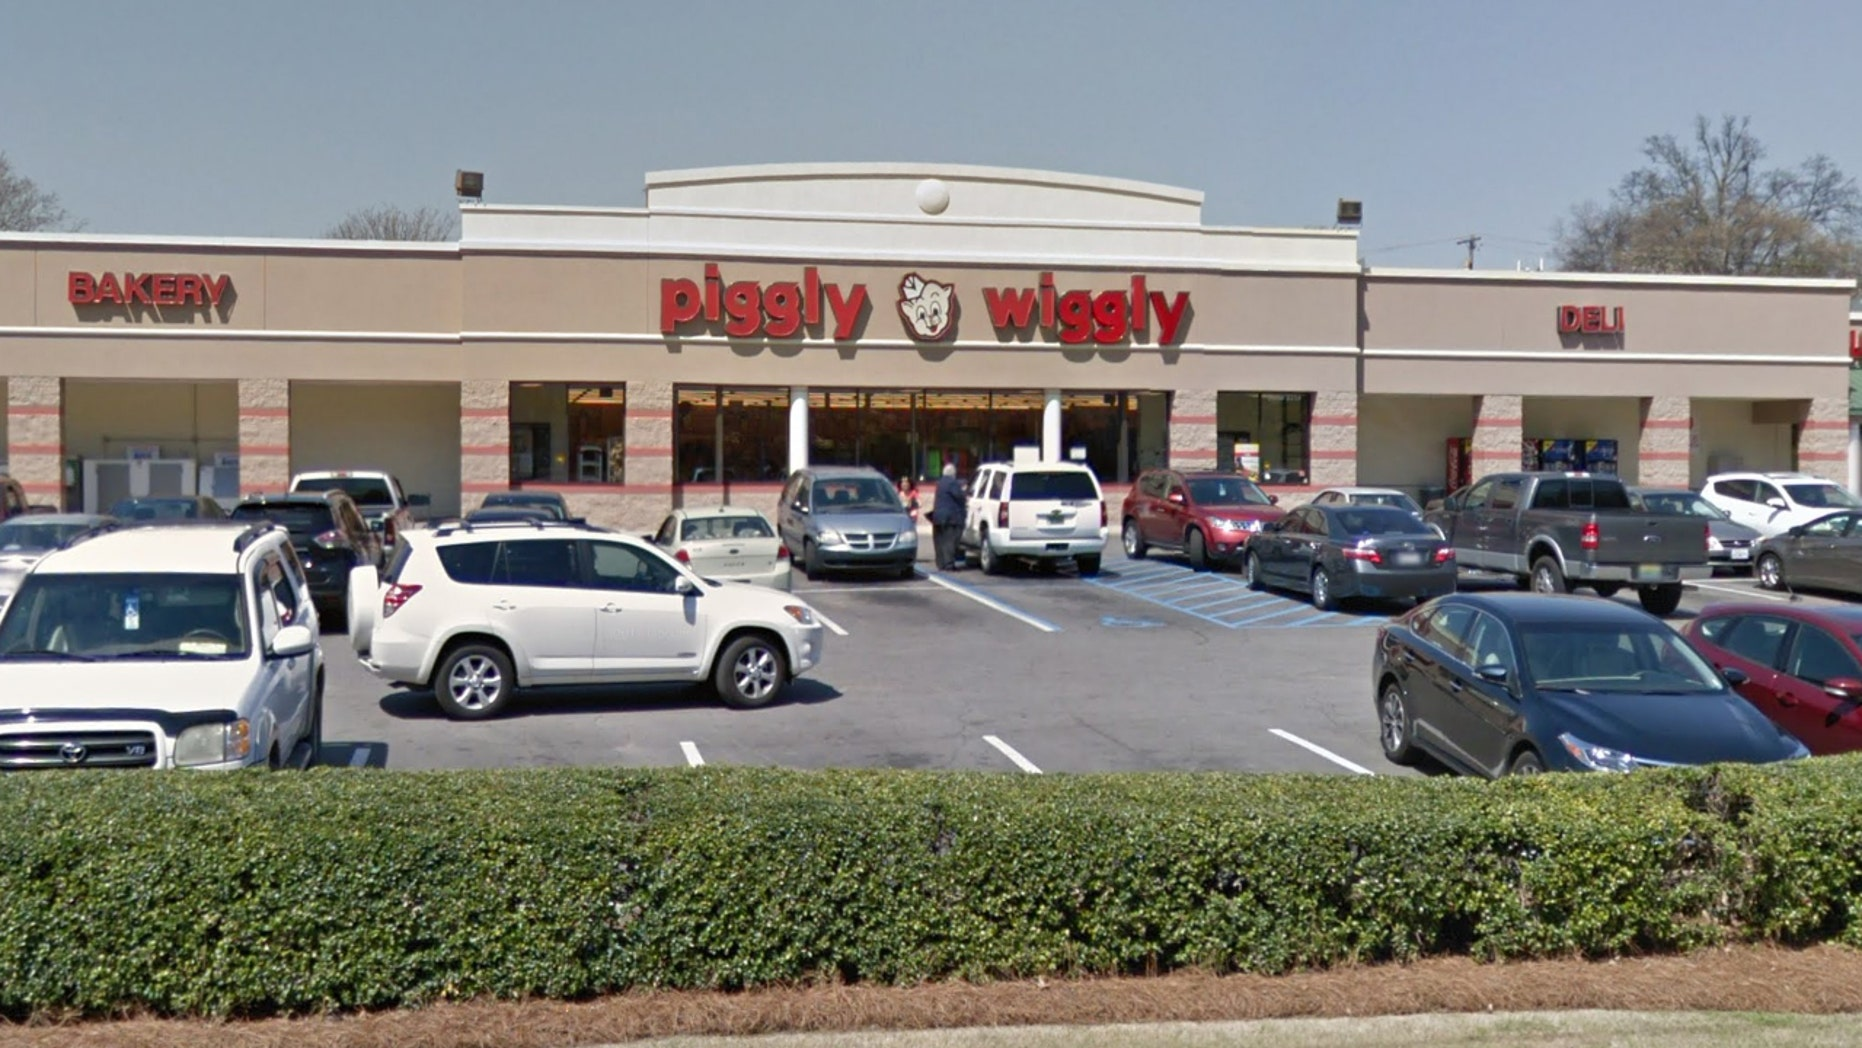 A Piggly Wiggly customer who misplaced her wallet with nearly $300 cash is praising the youngemployee who returned it.